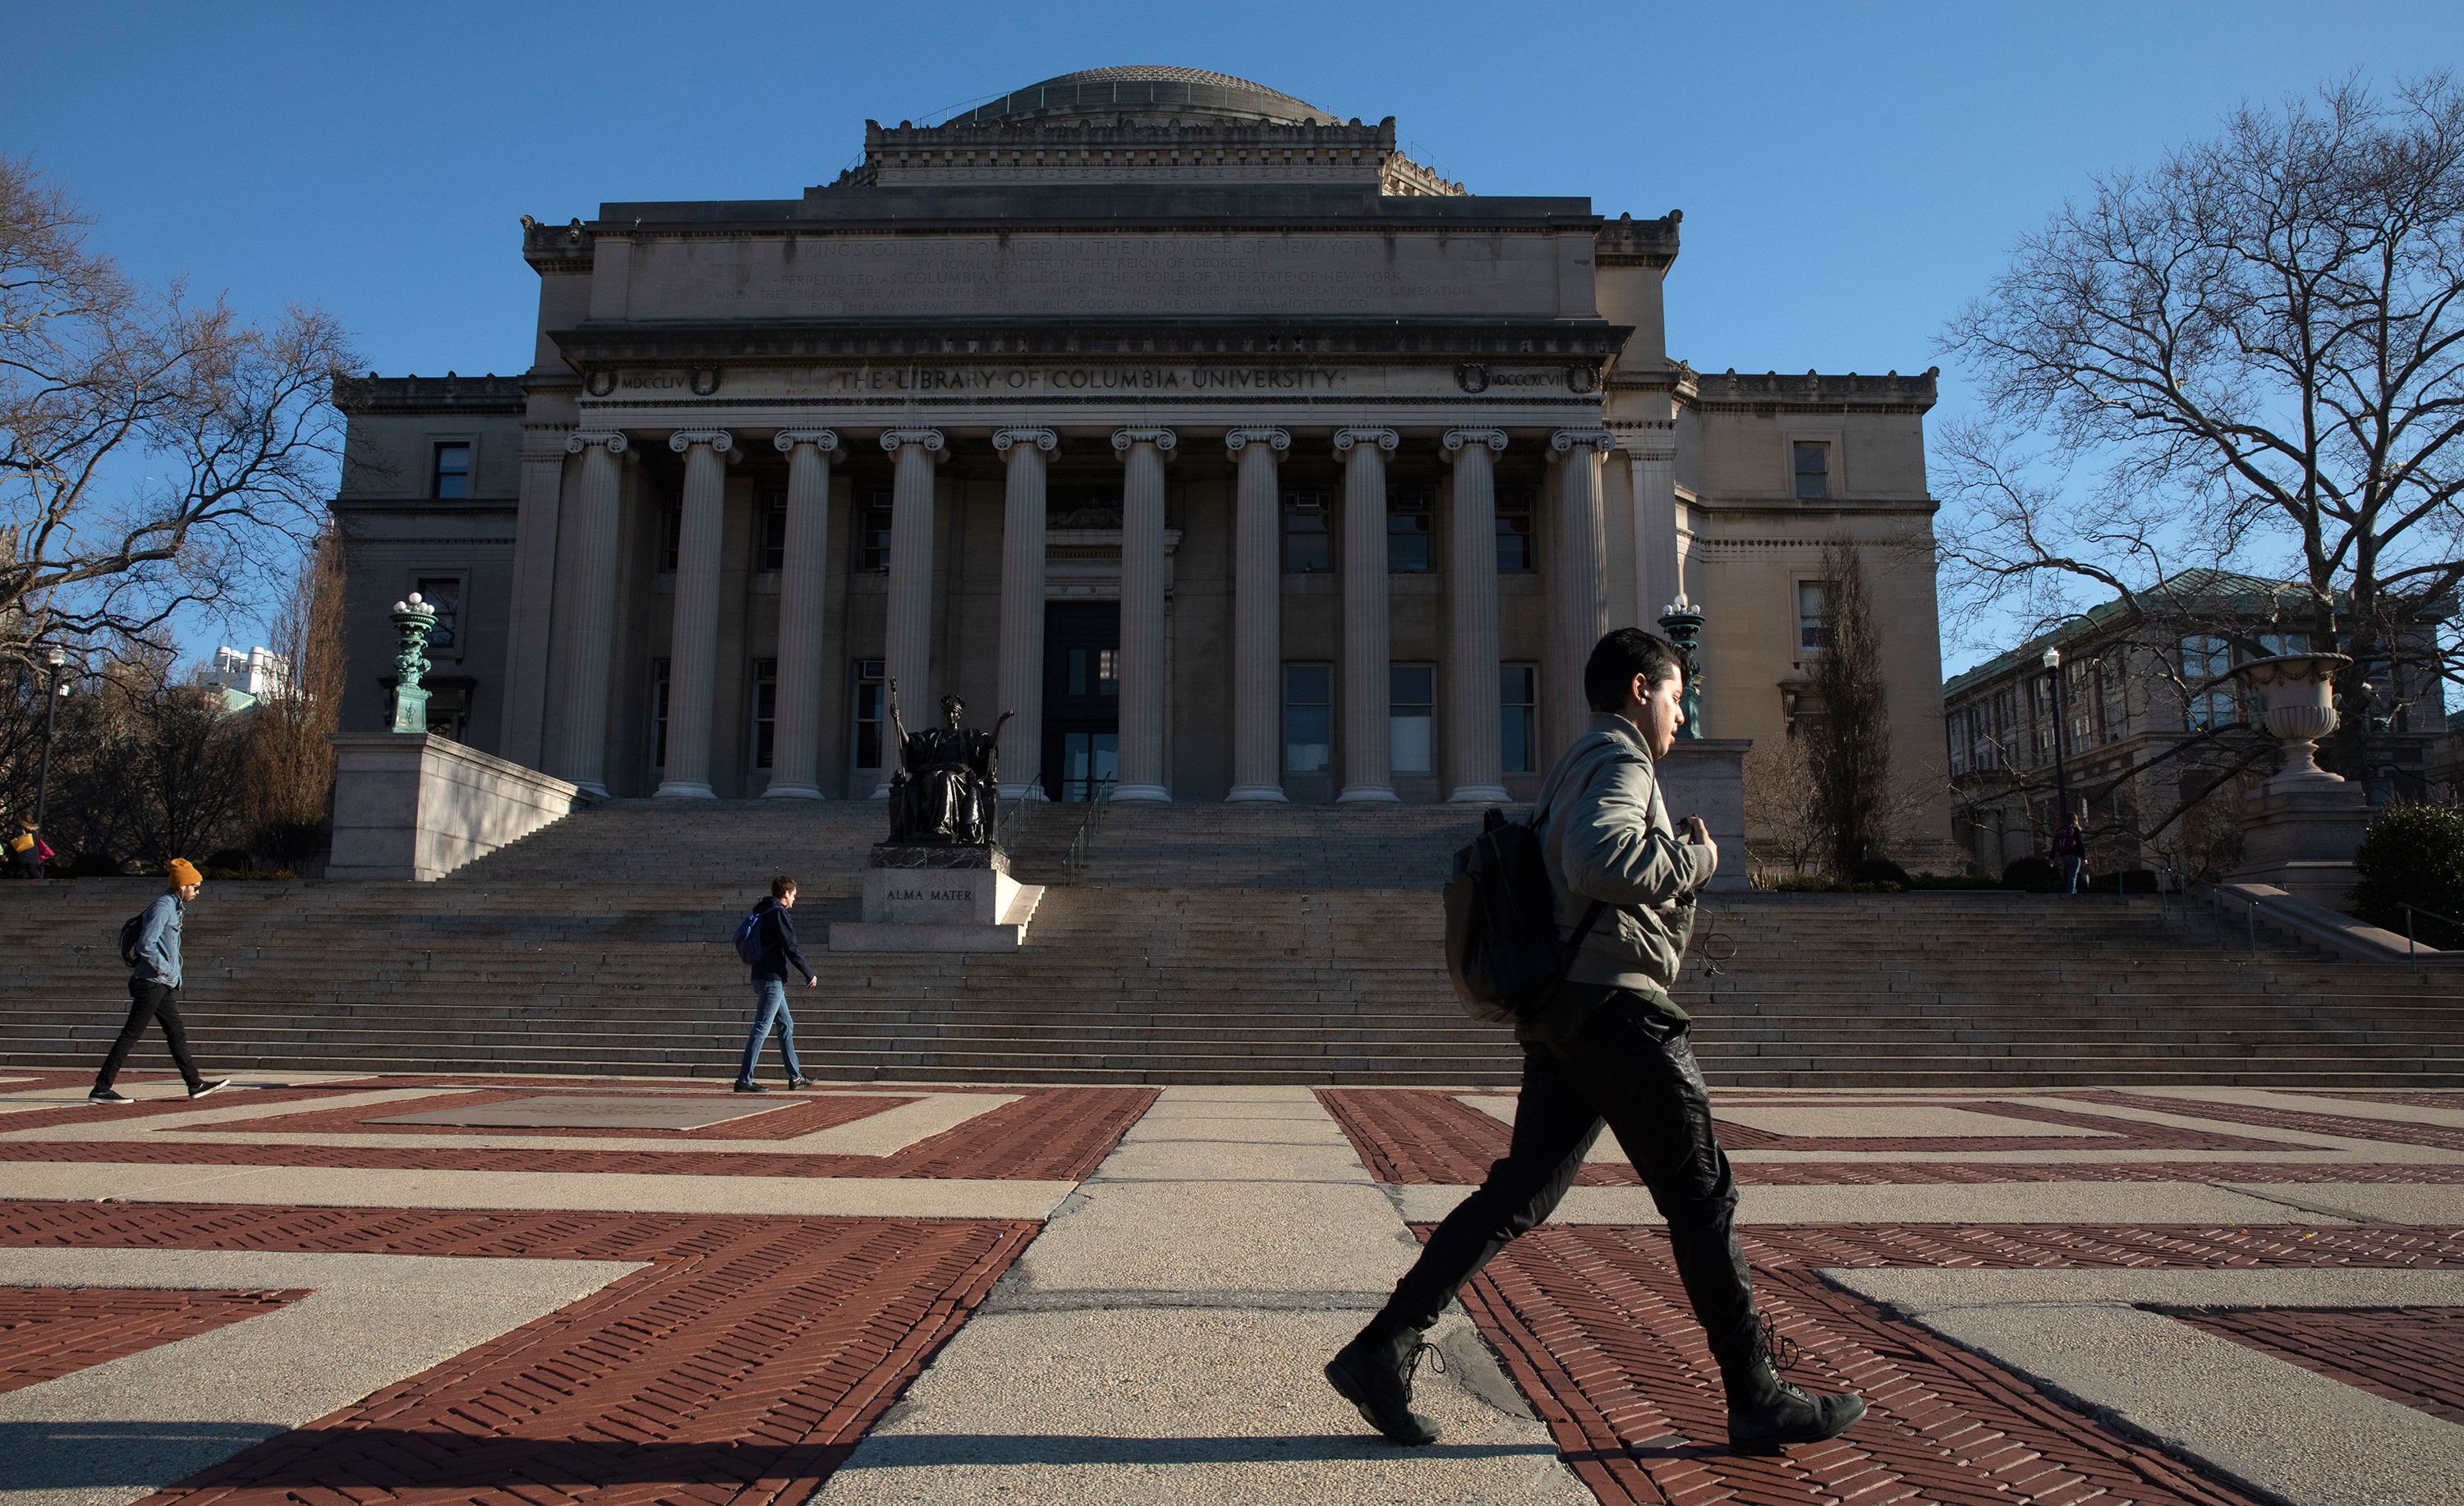 People walk around the Columbia University campus in New York on March 9.